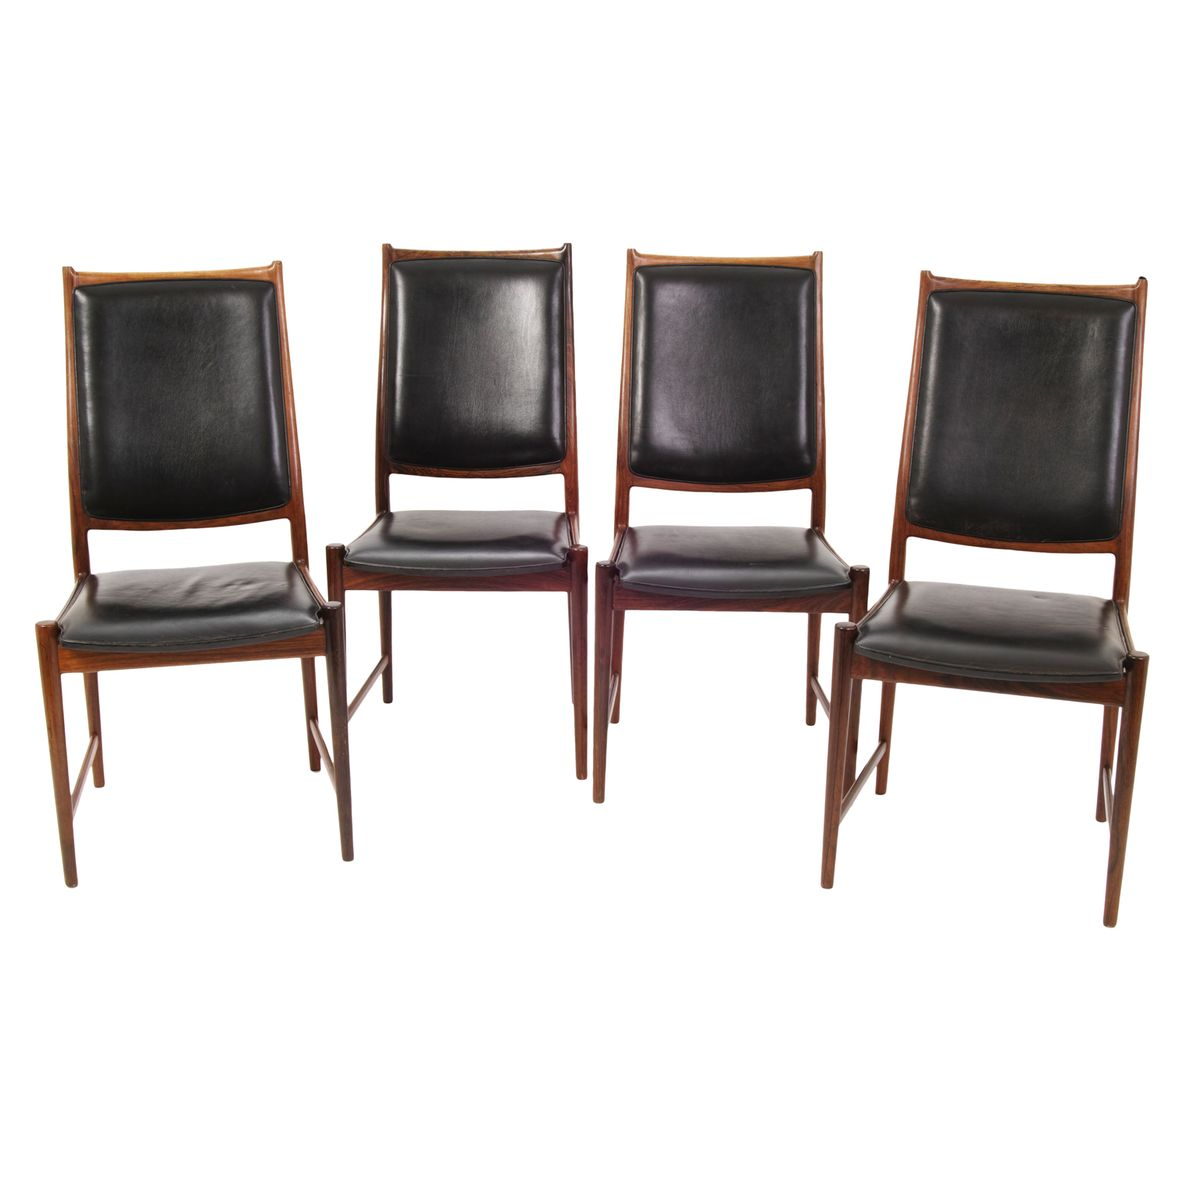 vintage norwegian model bruksbo dining chairs from